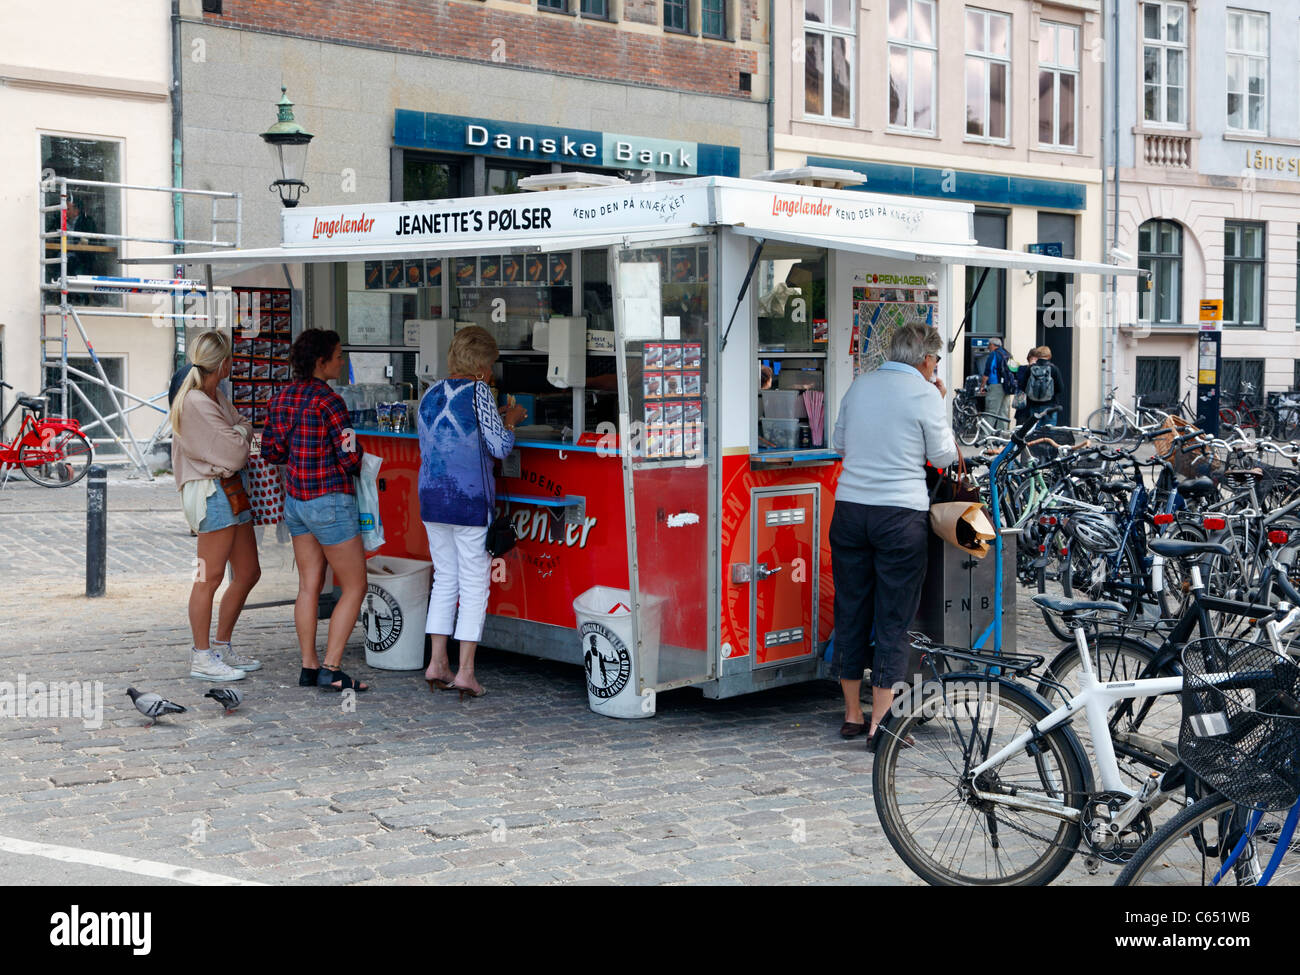 A typical and classic Danish pølsevogn, hot dog stand, on the main pedestrian street,Strøget, Stroeget, - Stock Image